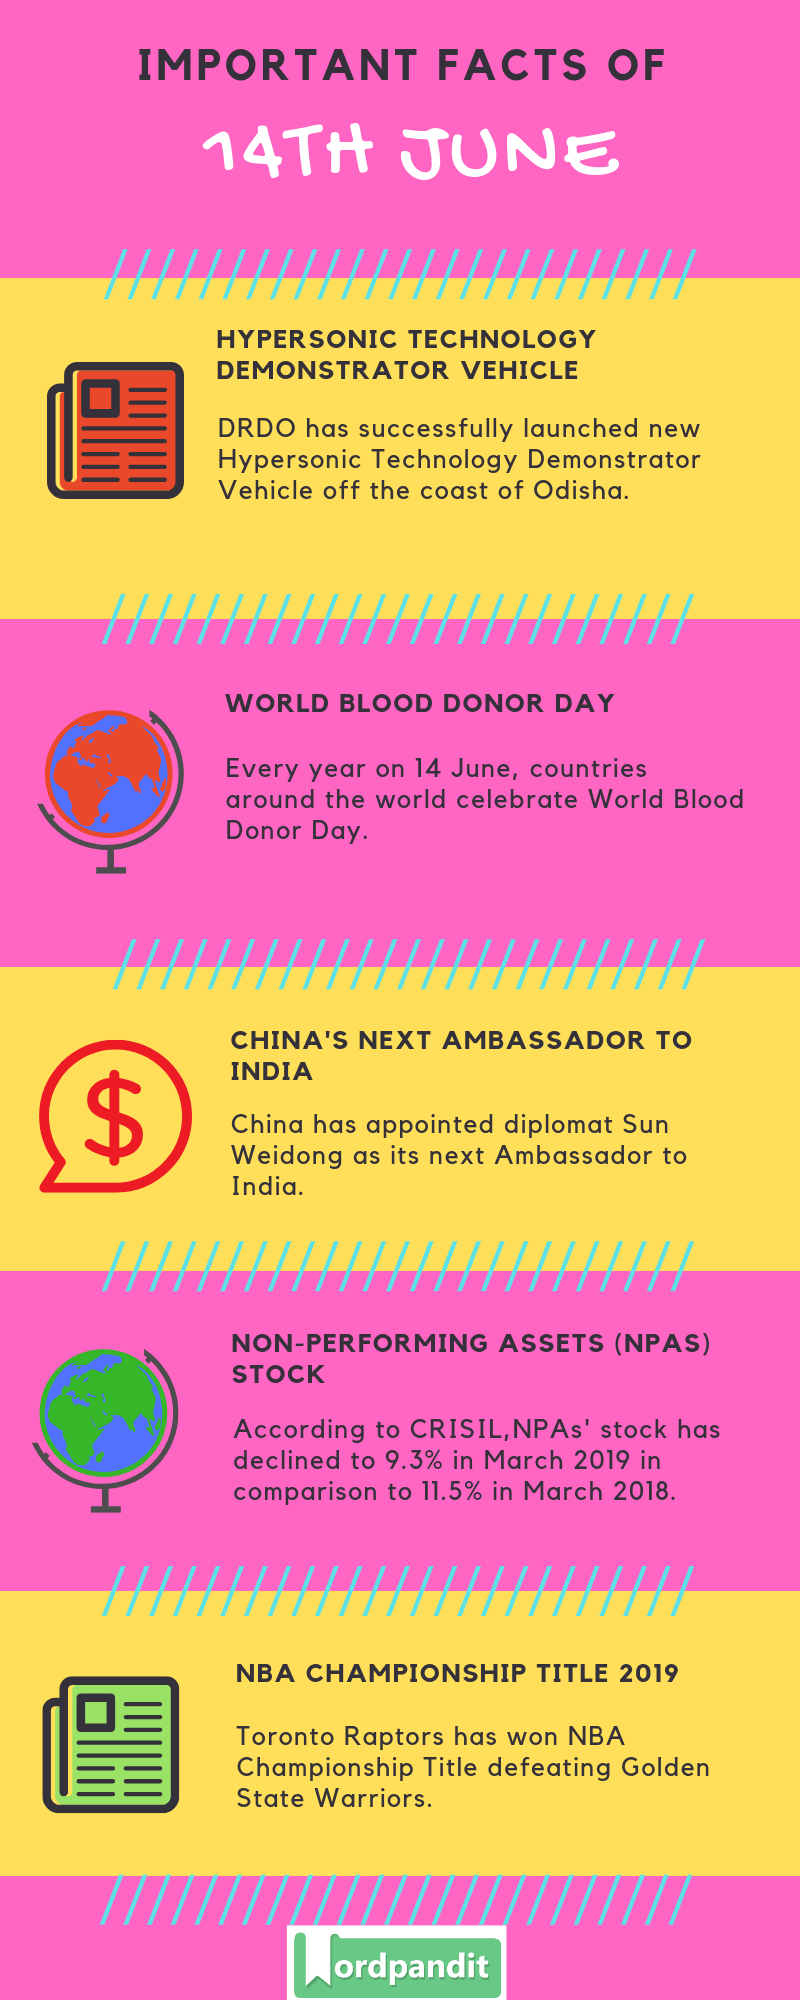 Daily Current Affairs 14 June 2019 Current Affairs Quiz 14 June 2019 Current Affairs Infographic